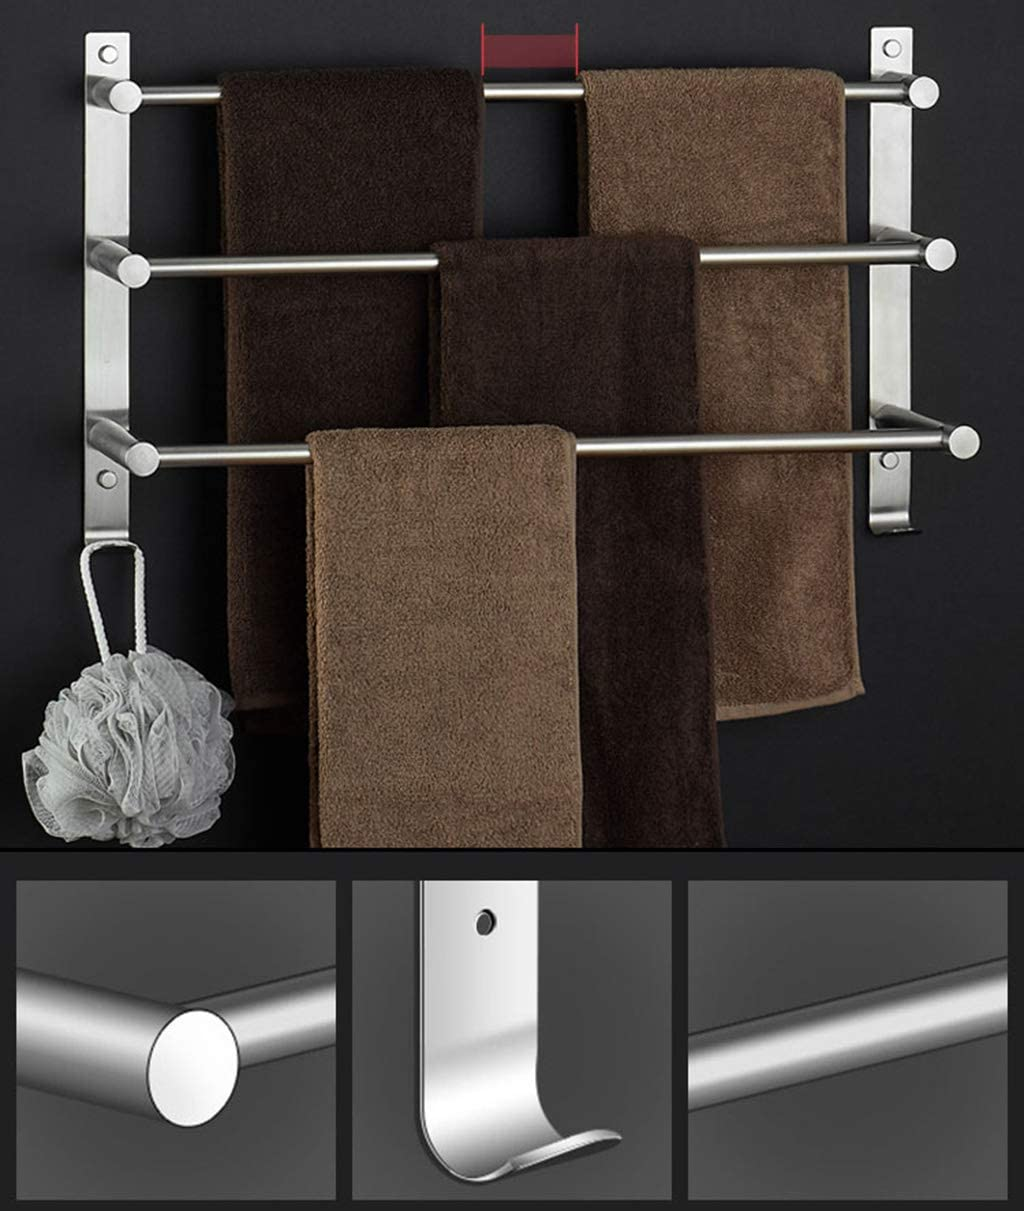 FEFCK Wall-mounted Towel Rack 304 Stainless Steel, Three-tier Toilet Rack Bathroom Multi-layer Hanging Rod With Two Hooks 70cm 60cm